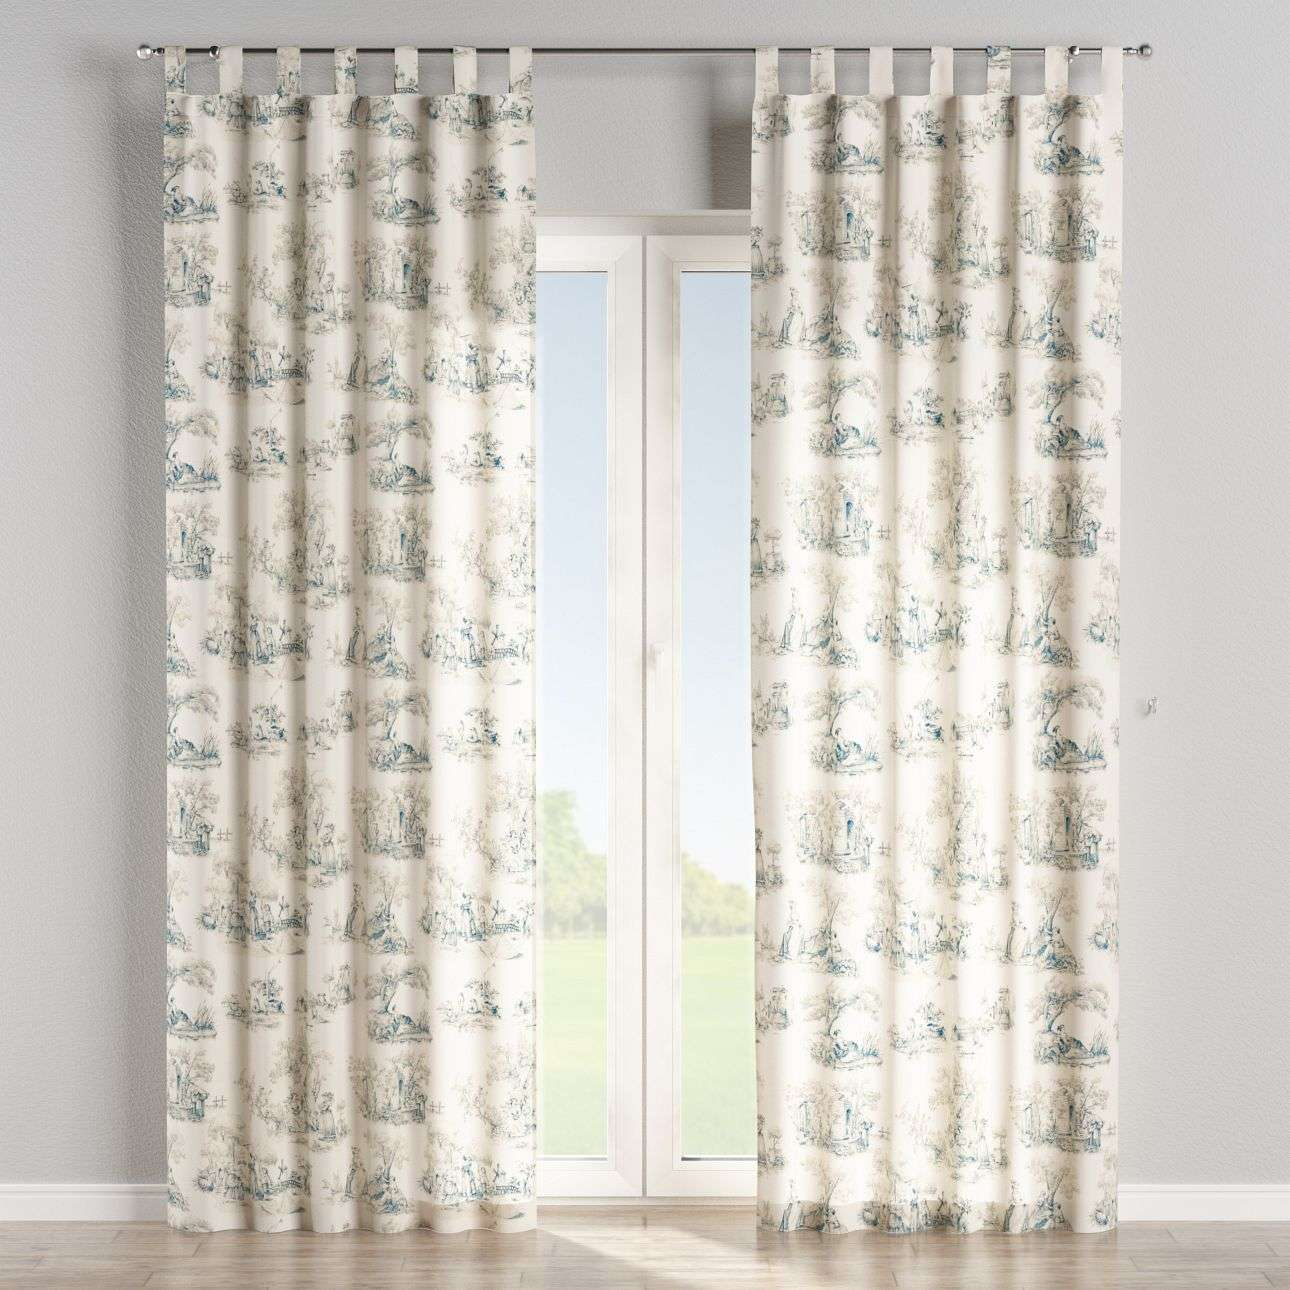 Tab top curtains 130 x 260 cm (51 x 102 inch) in collection Avinon, fabric: 132-66